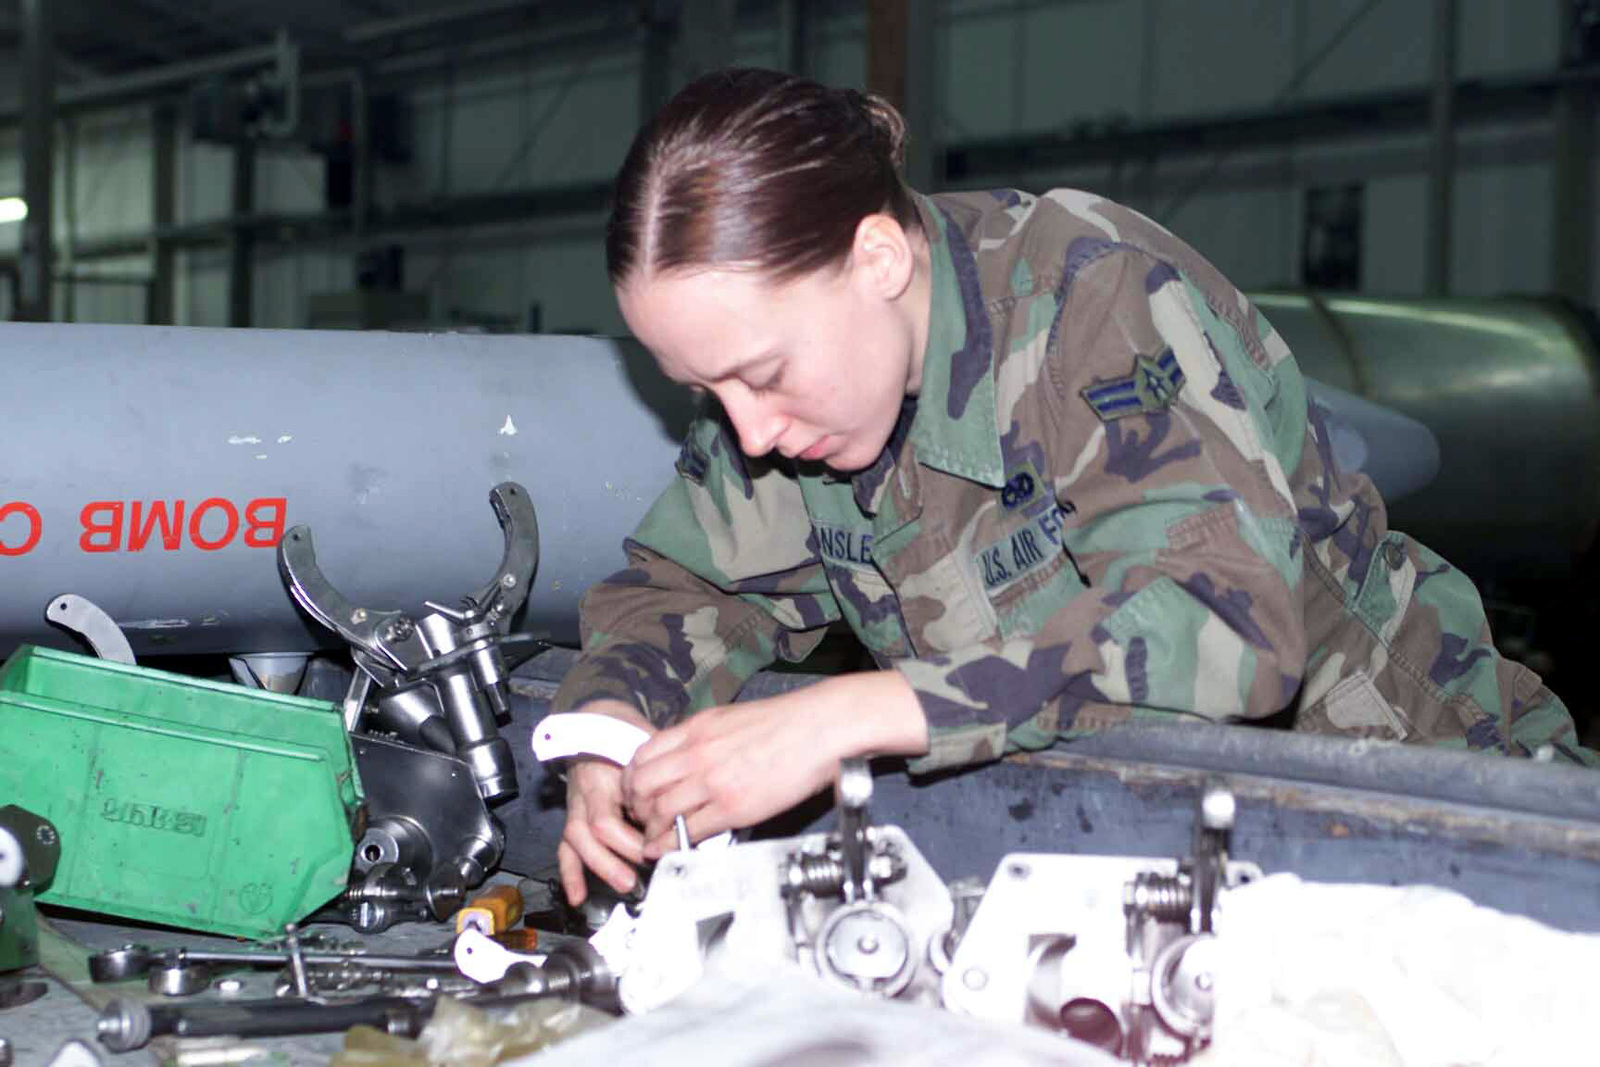 US Air Force (USAF) AIRMAN First Class (A1C) Katie Sponsler, an Aircraft Armament Systems Apprentice, with the 52nd Equipment Maintenance Squadron (EMS), at Spangdahlem Air Base (AB), Germany, disassembles, cleans and reassembles an F-16 bomb dispenser unit during a periodic 180 day inspection